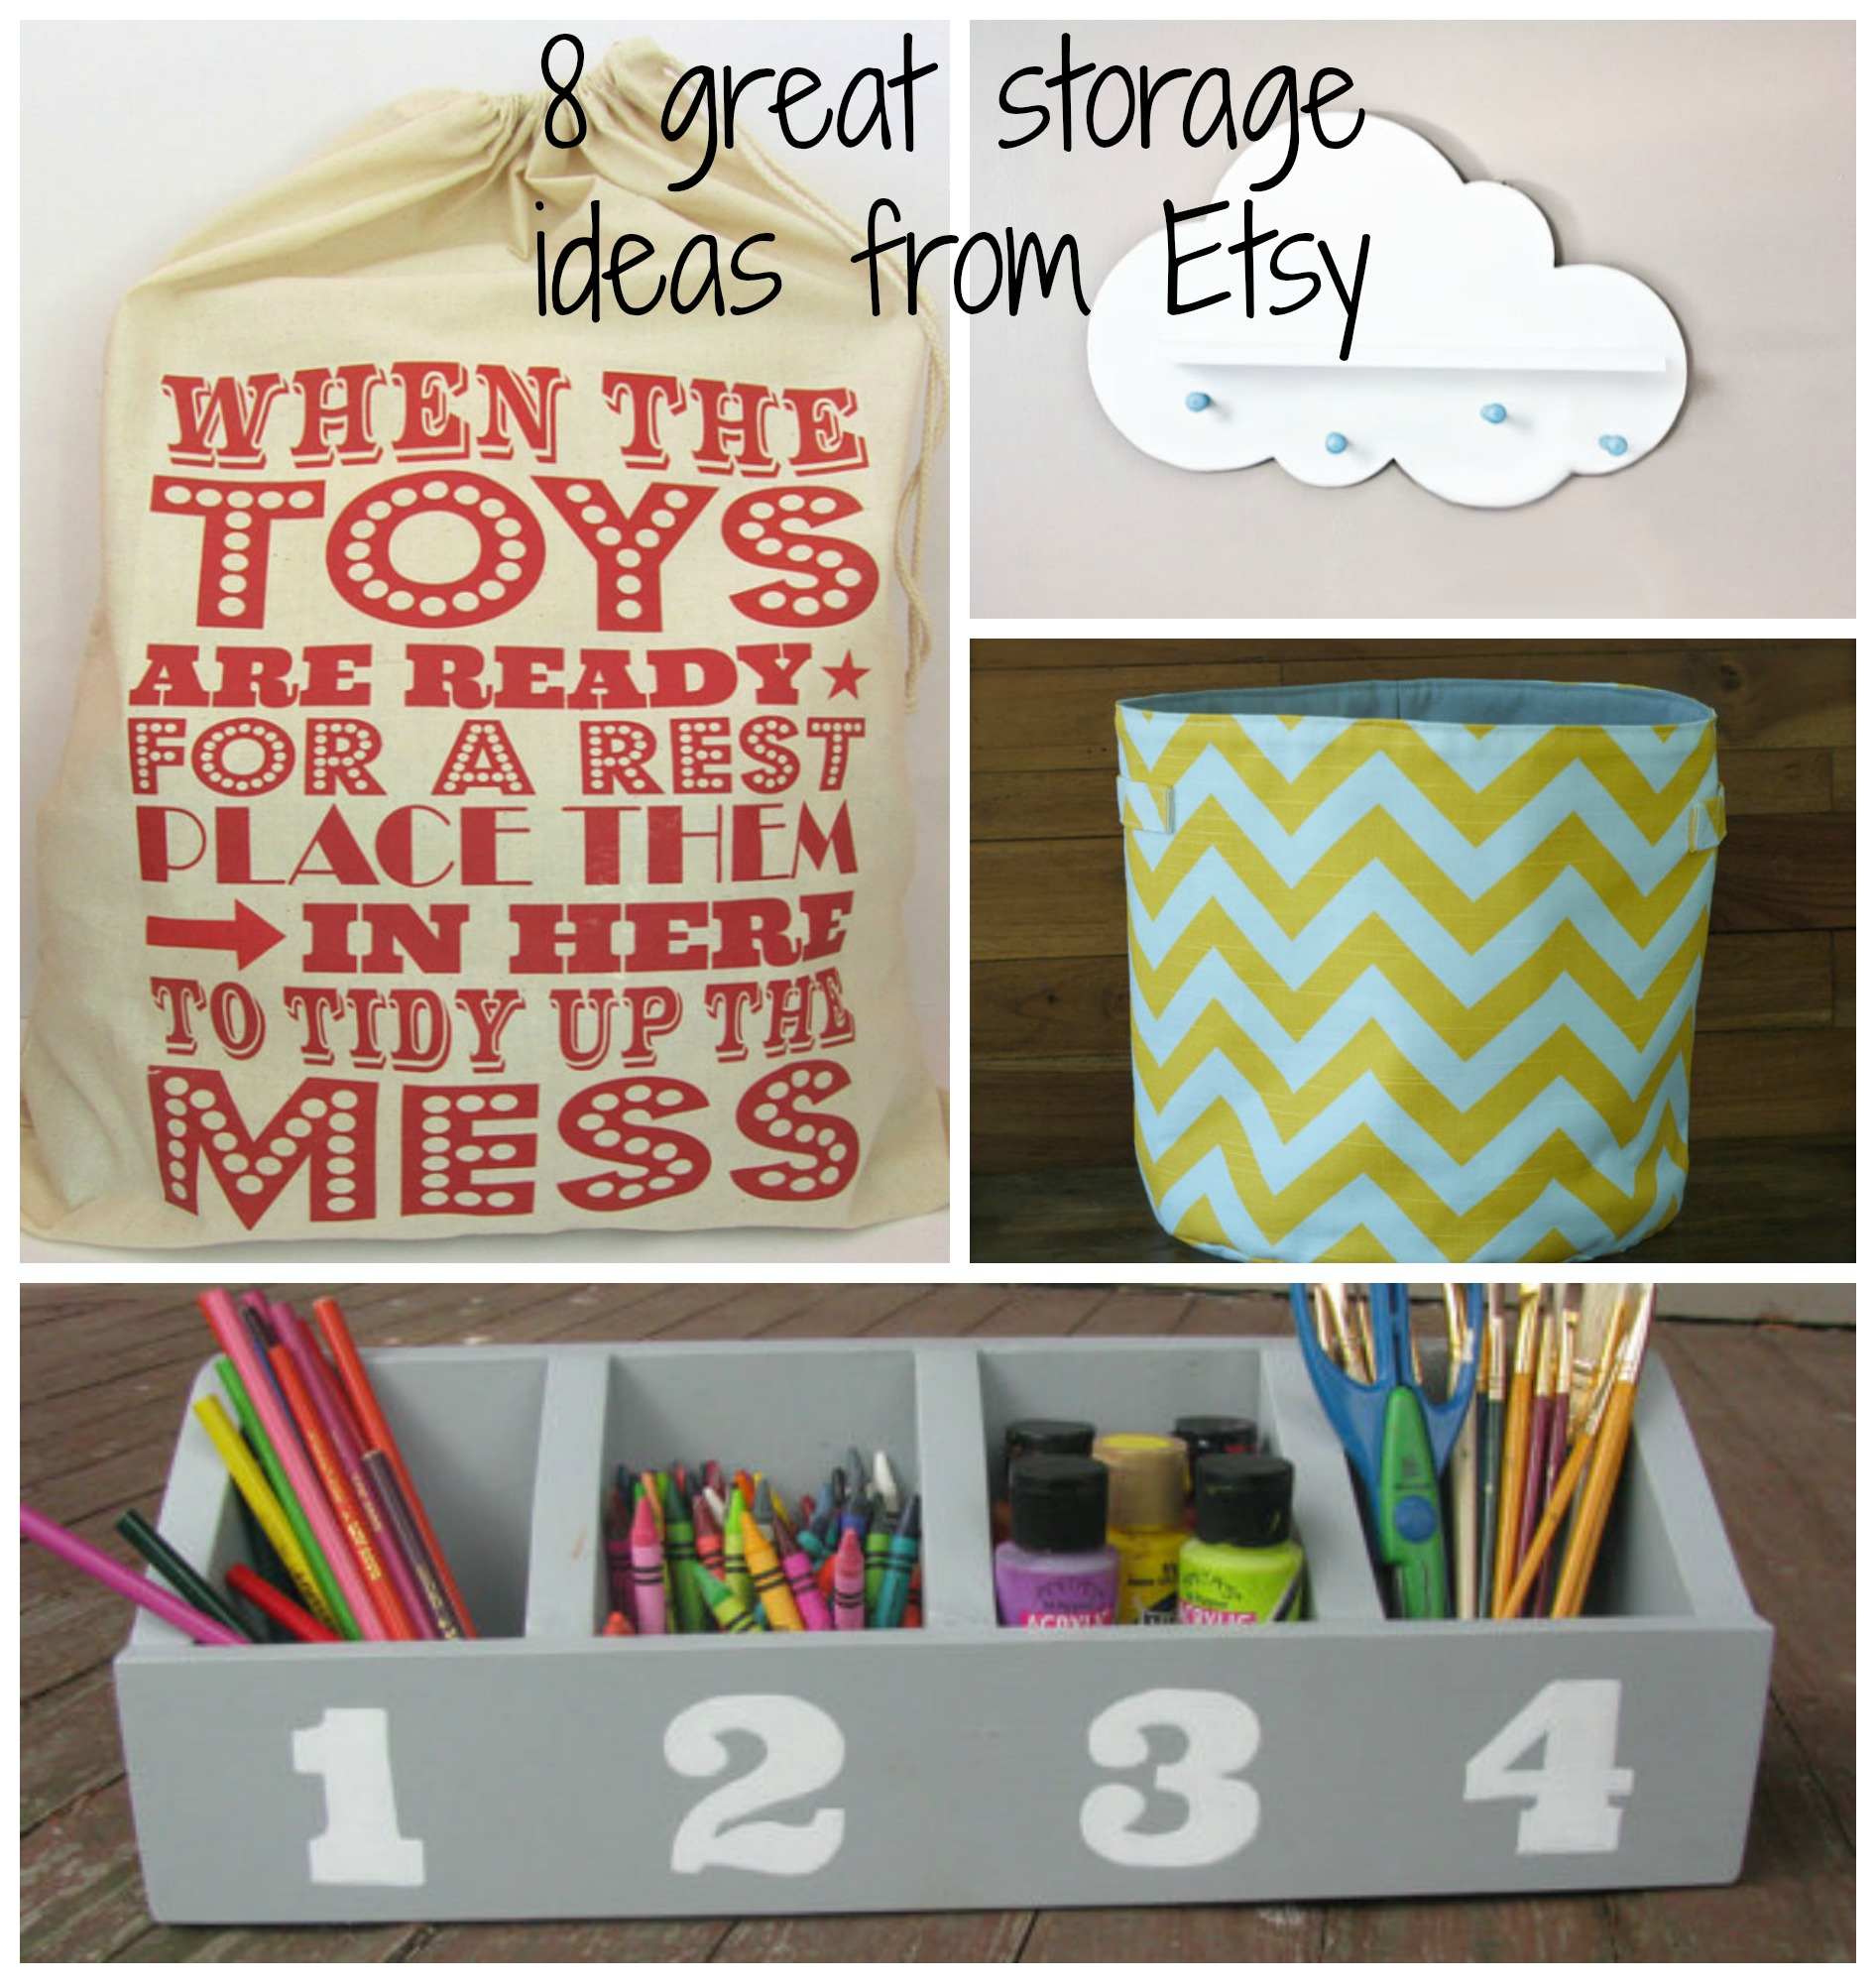 Toy storage ideas from Etsy